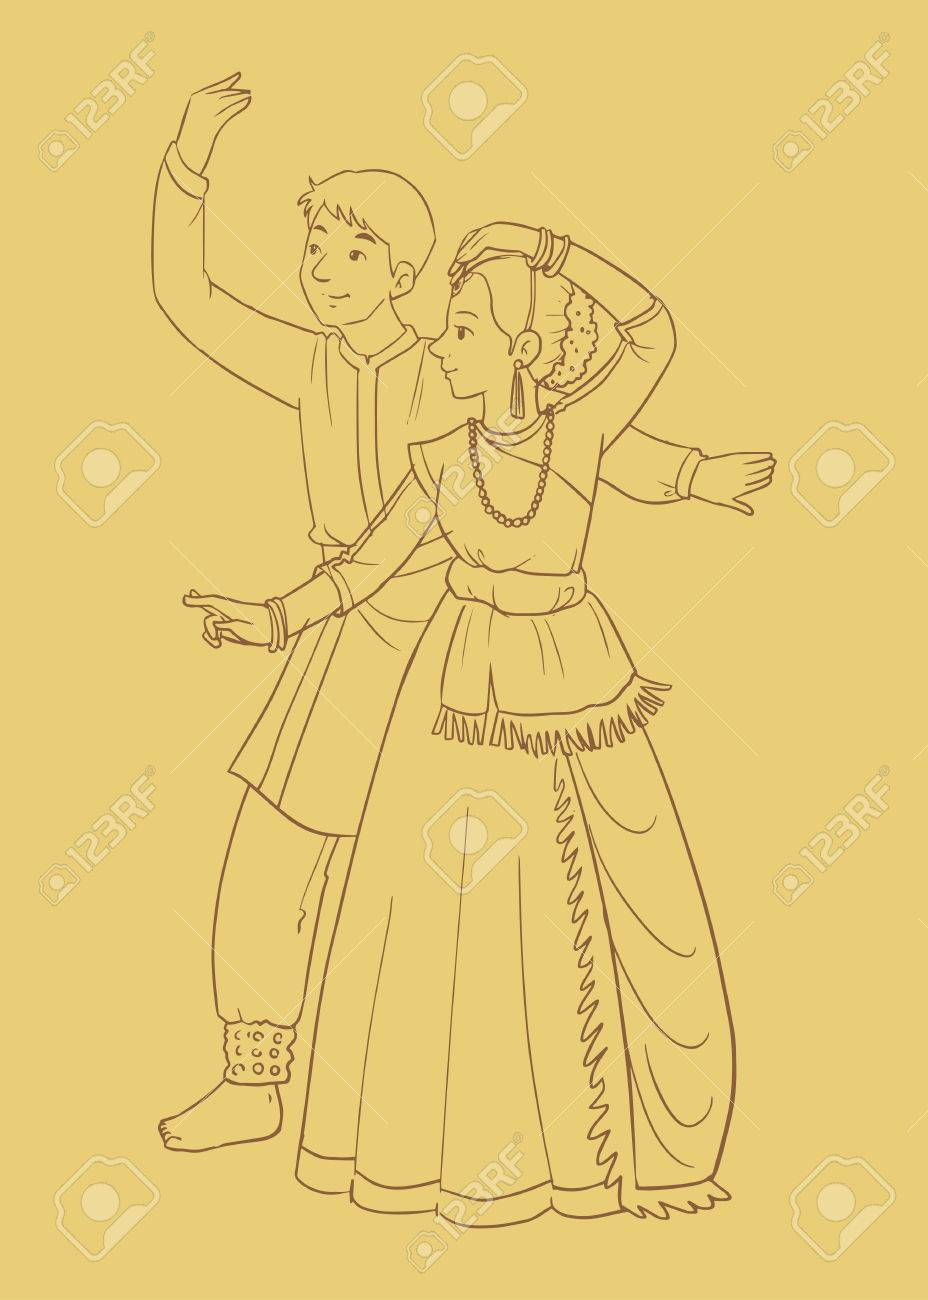 An Illustration Of A Couple Indian Dance Kathak Royalty Free Cliparts Vectors And Stock Illustration Image 84892545